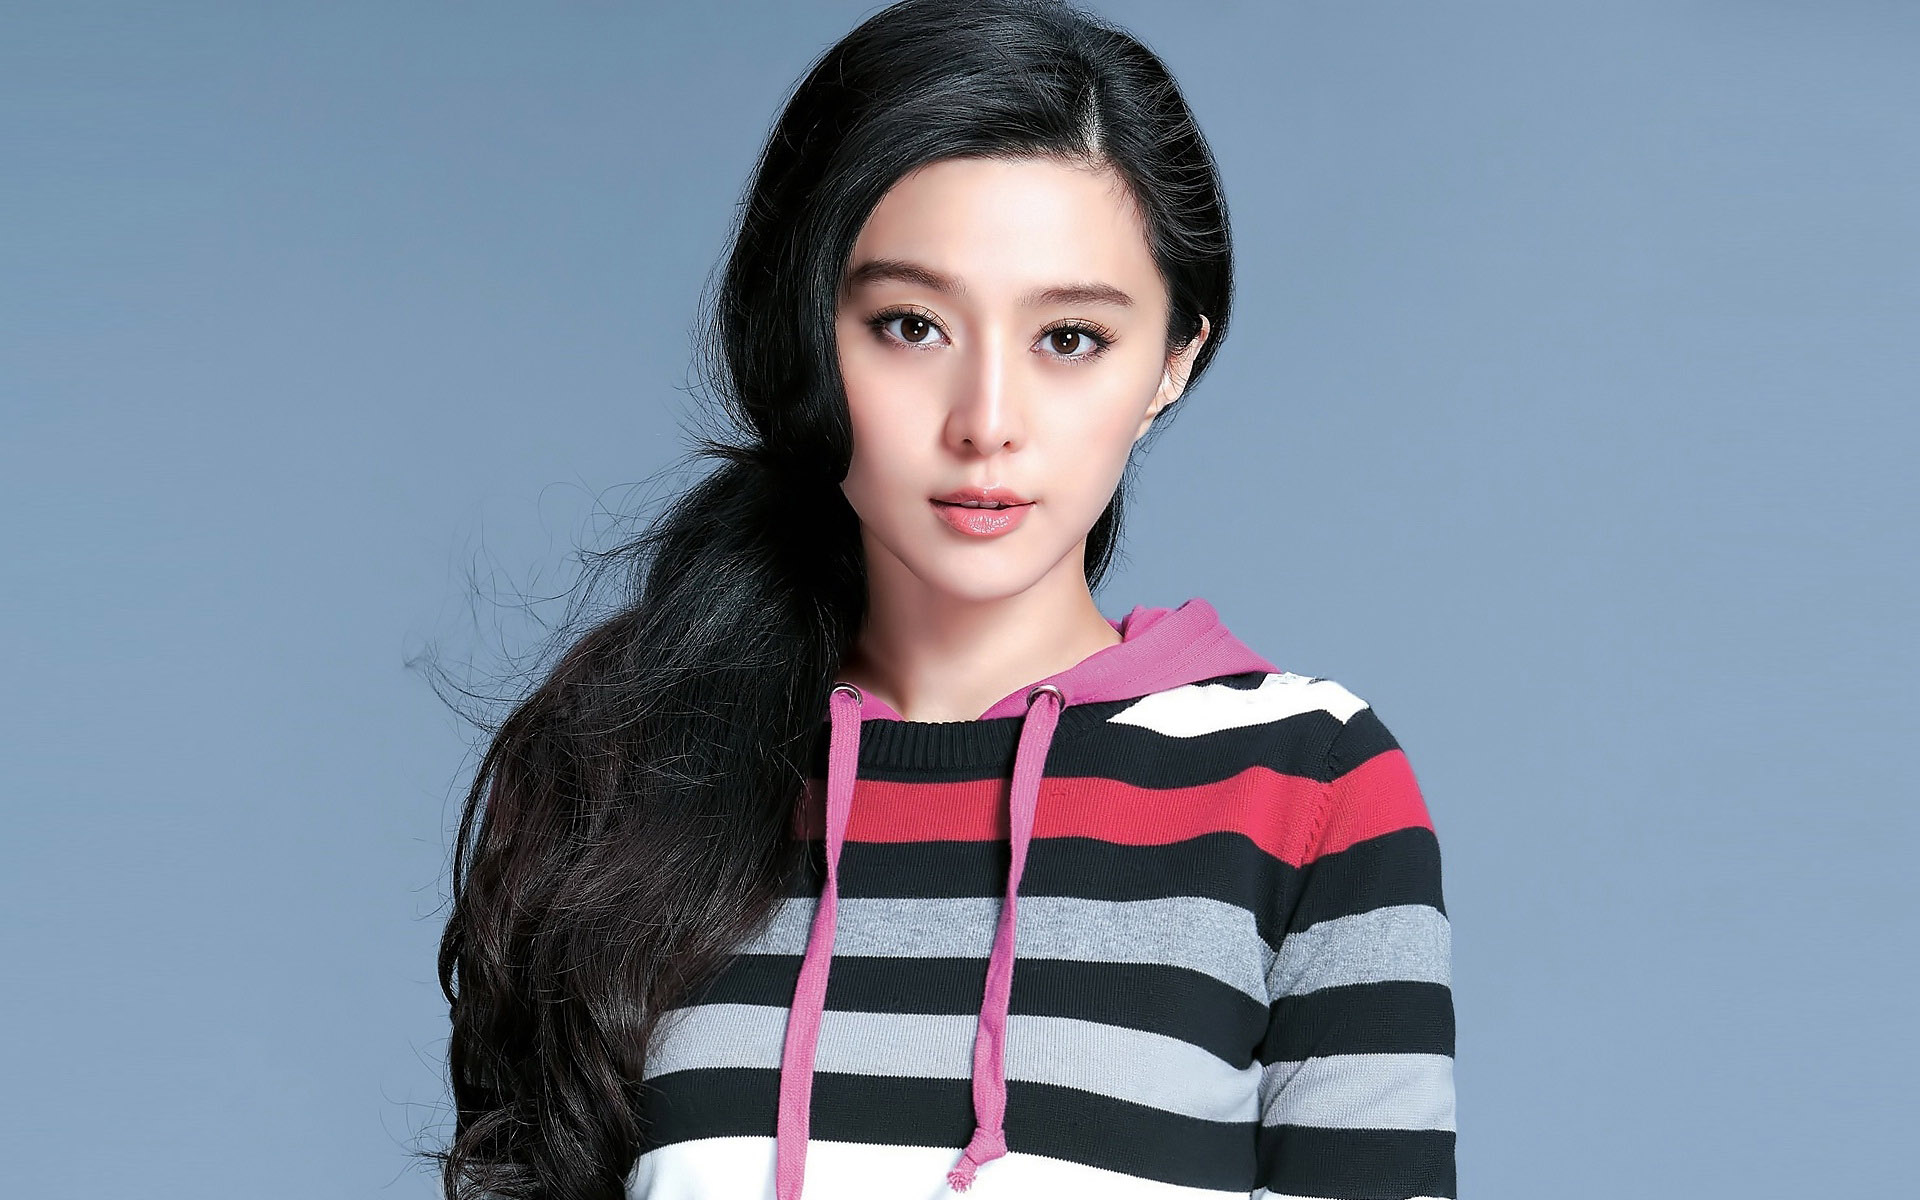 Meet Fan Bingbing the th highestpaid actress in the world